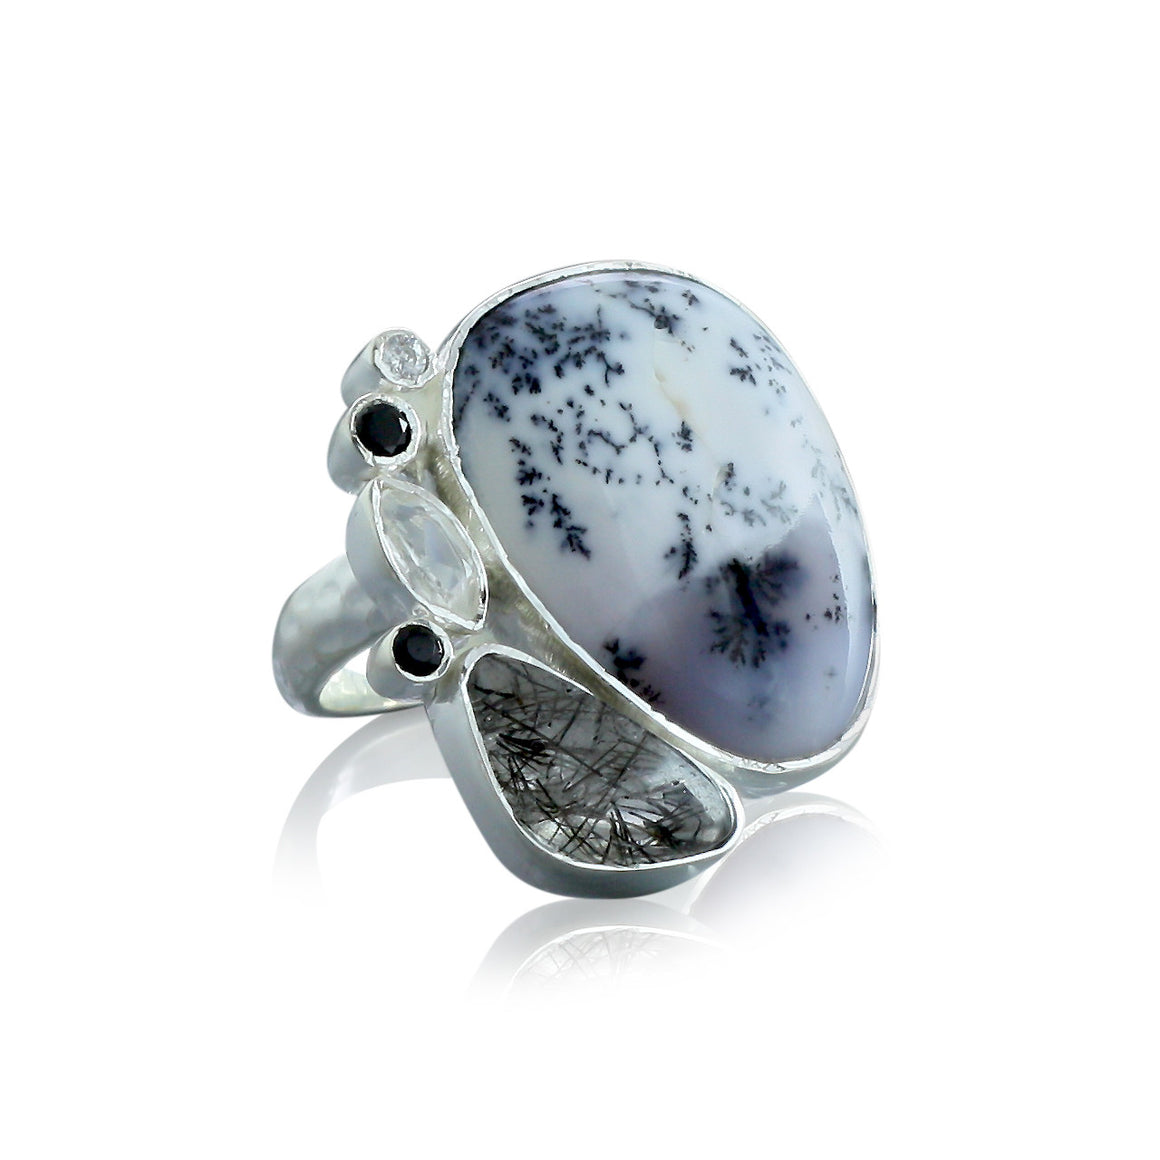 Dendritic Agate Ring - One of a Kind